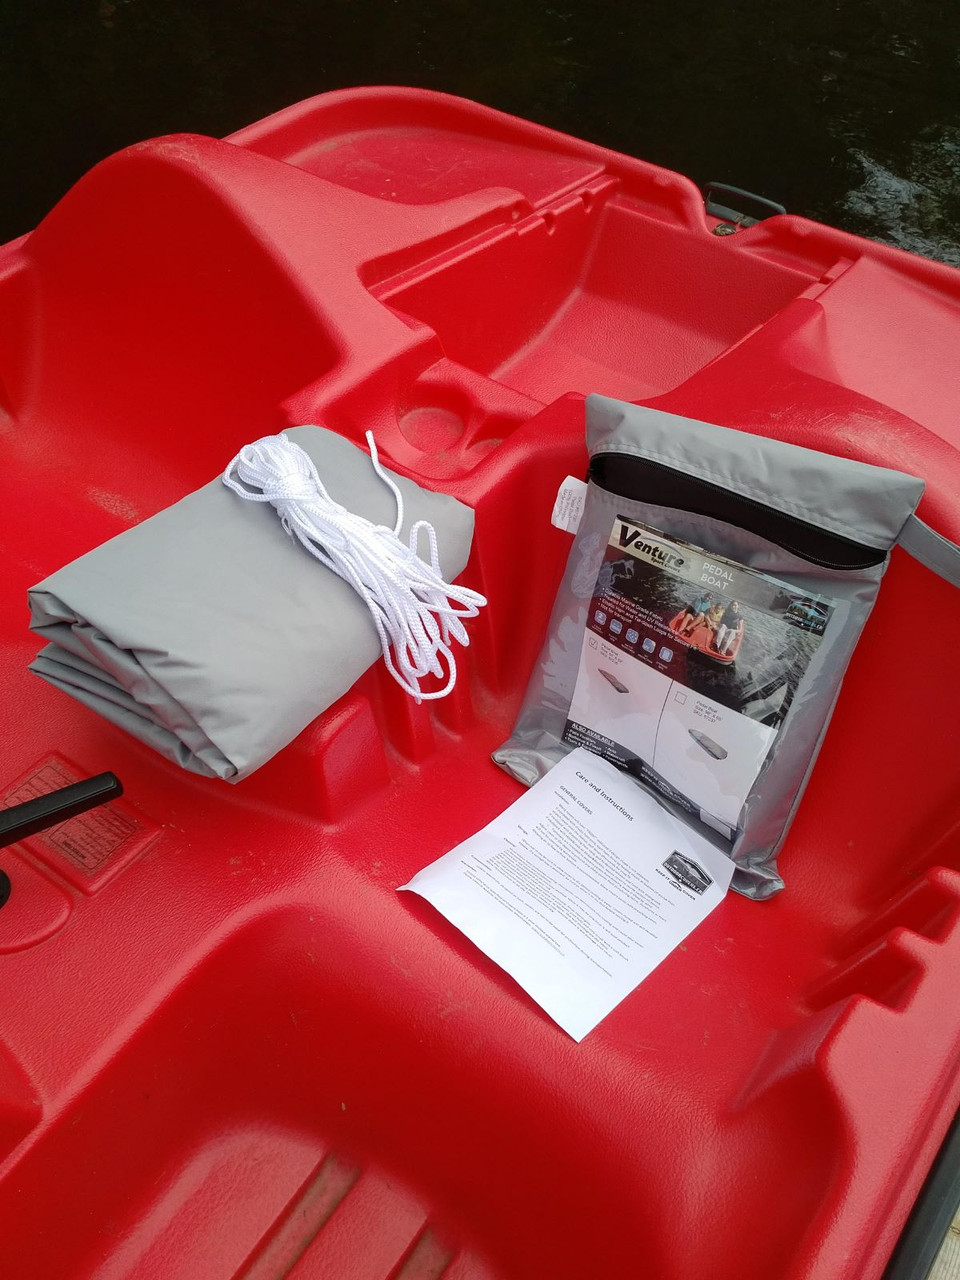 Venture Pedal Boat cover contents